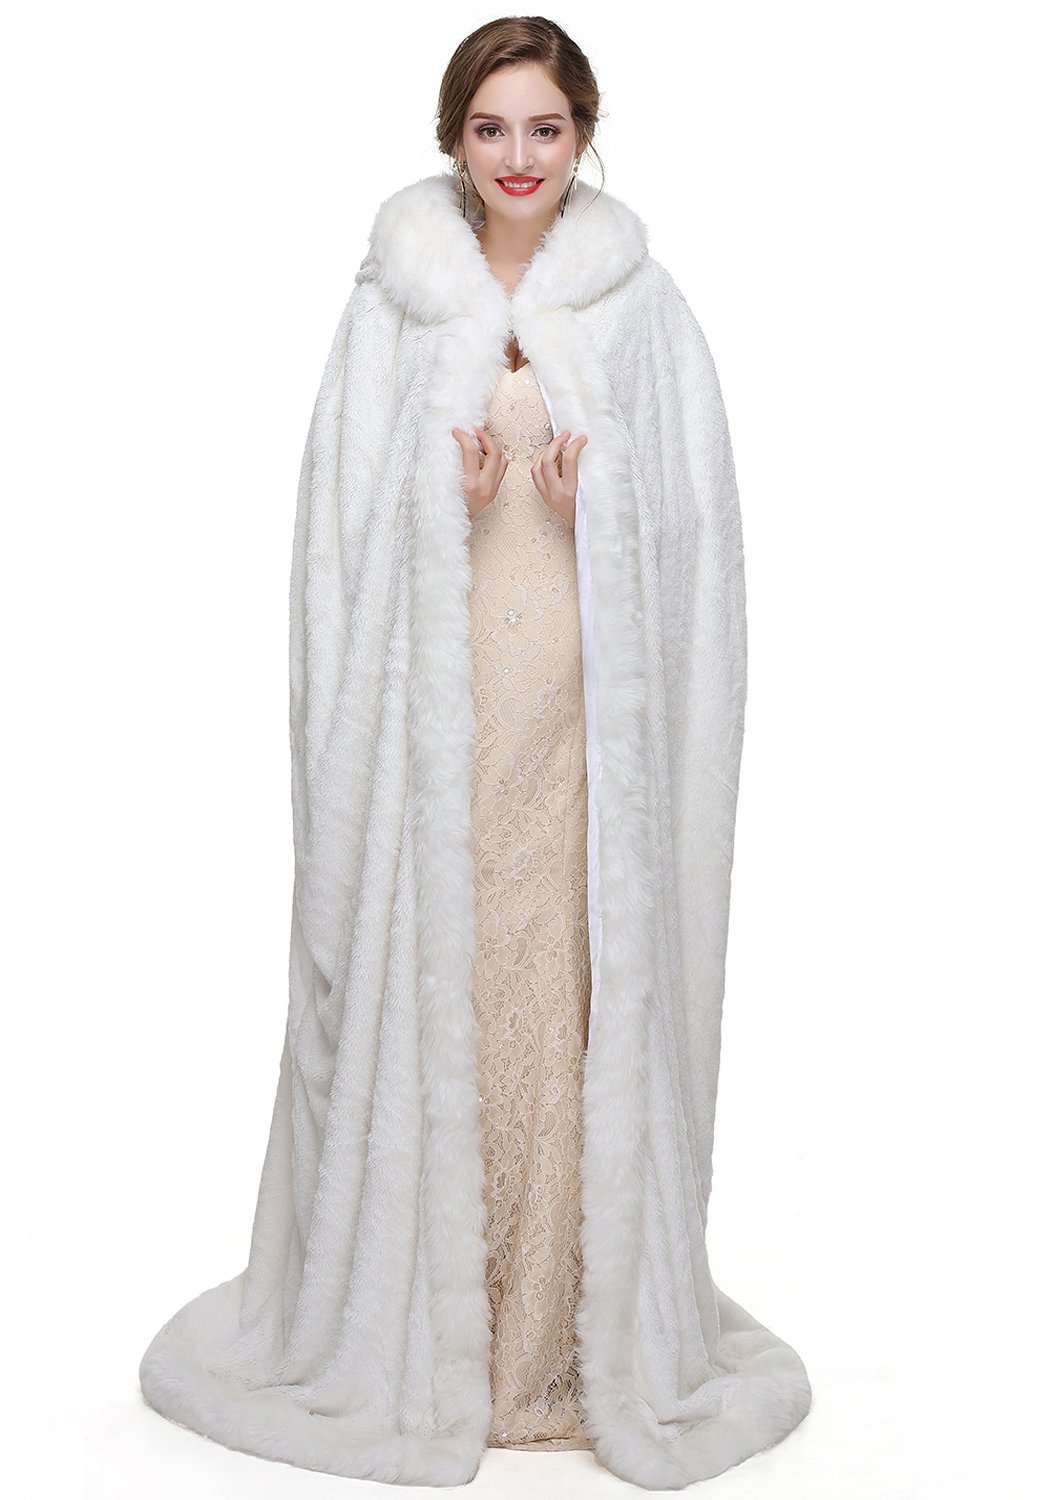 Zechun Women's Winter Hooded Cloak Wedding Bridal Christmas Fur Shawls Coat-4XL